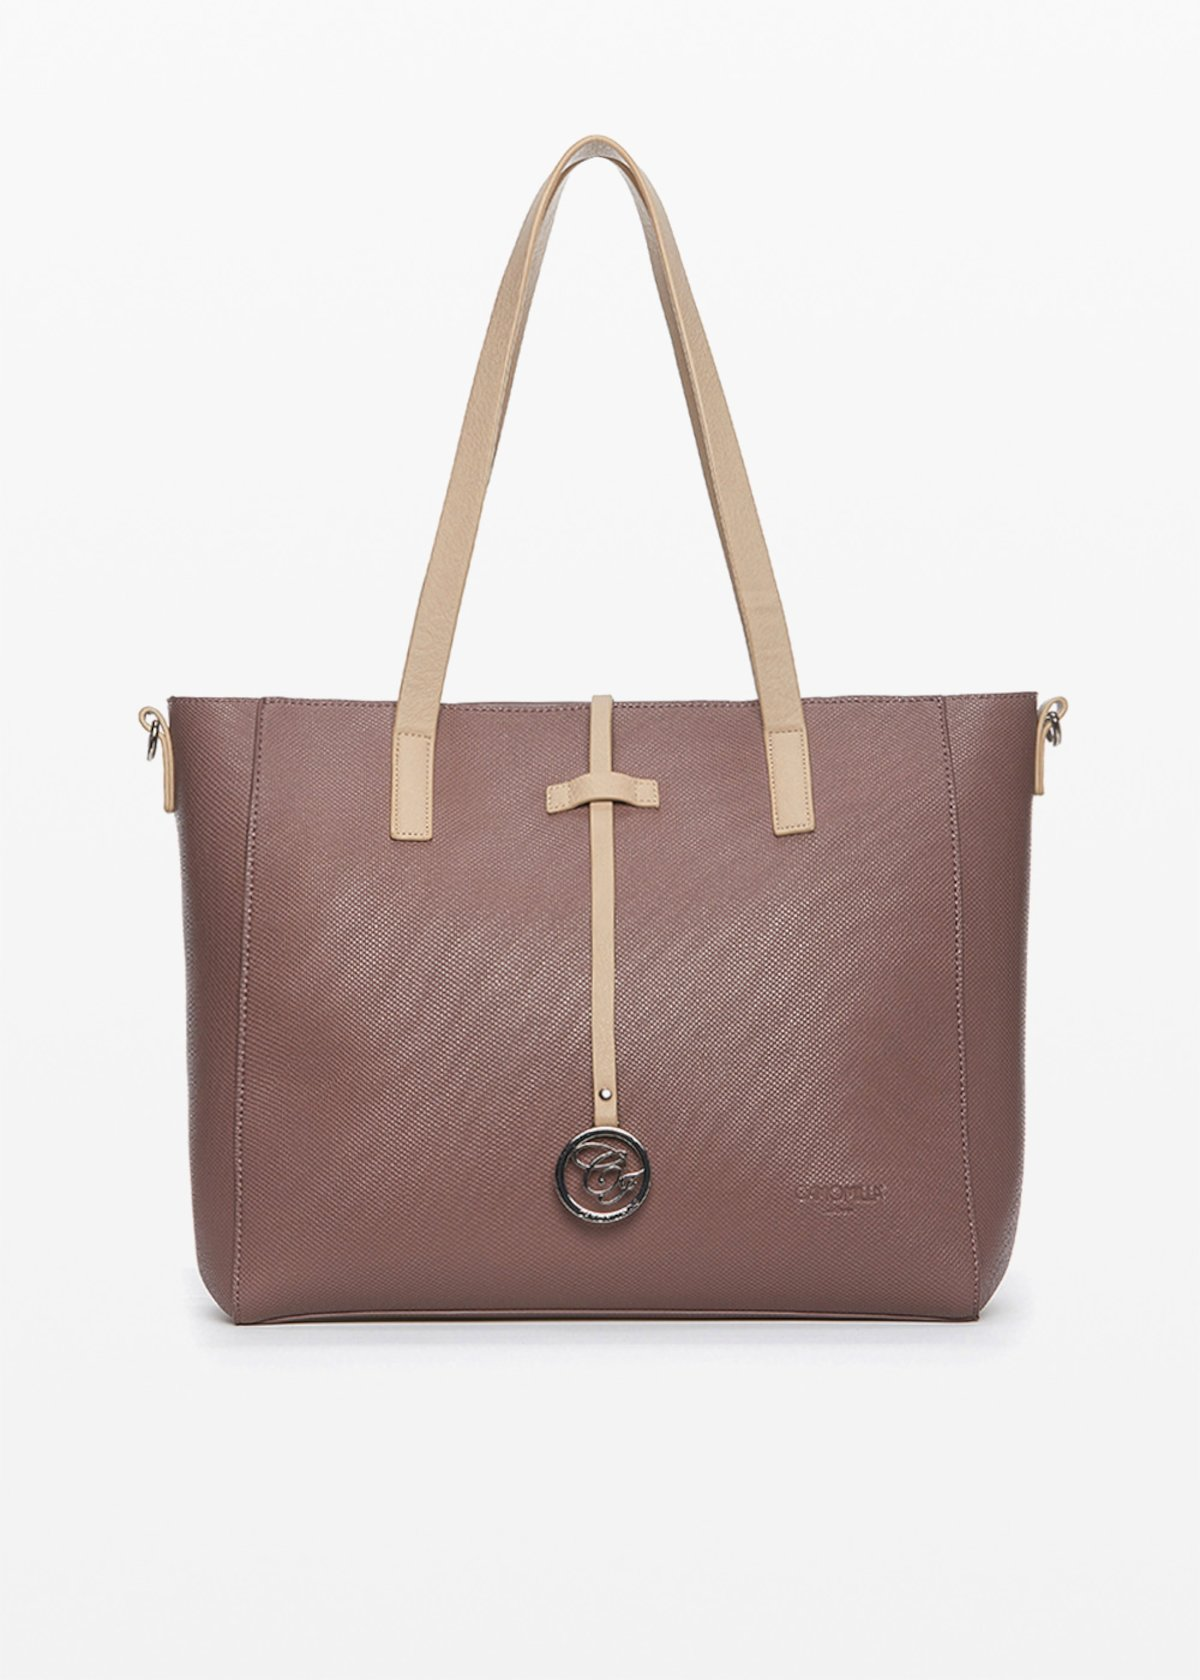 Brigitta Shopping faux leather bicolour bag with logo charm on the front - Calcite / Doeskin - Woman